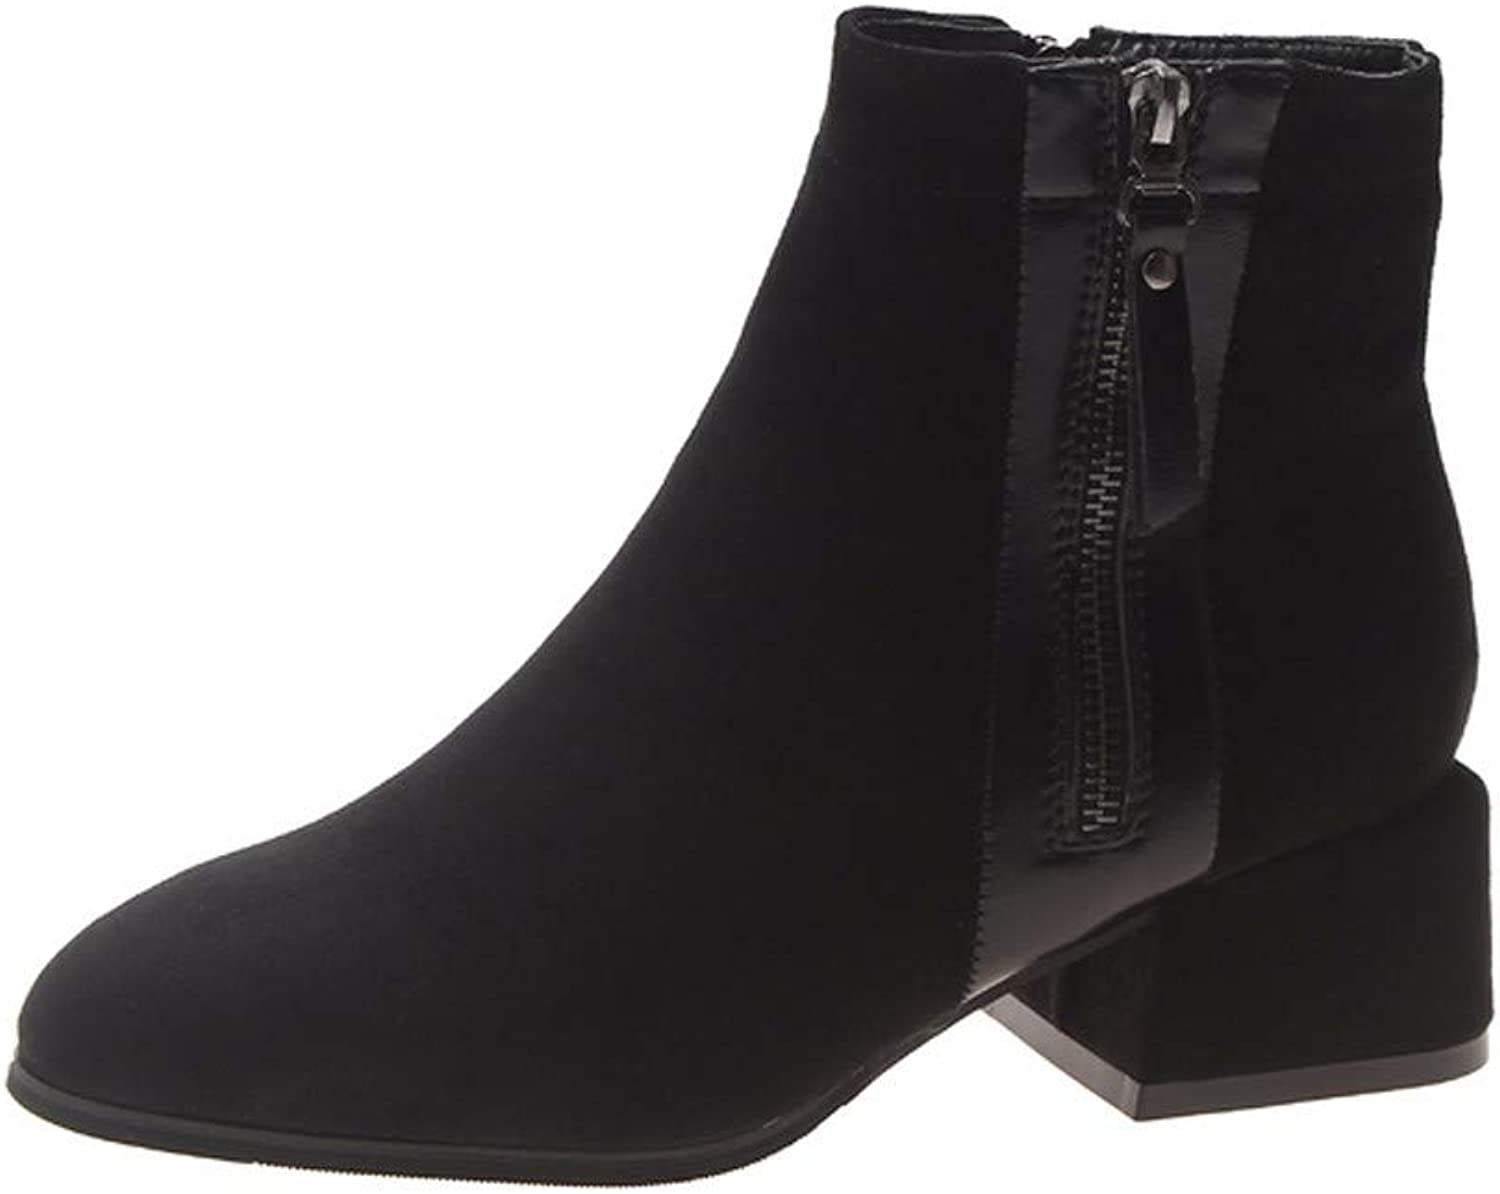 SFSYDDY Popular shoes Martin Boots with High 5Cm Retro Thick Short Boots Thin Naked Boots and Velvet shoes.